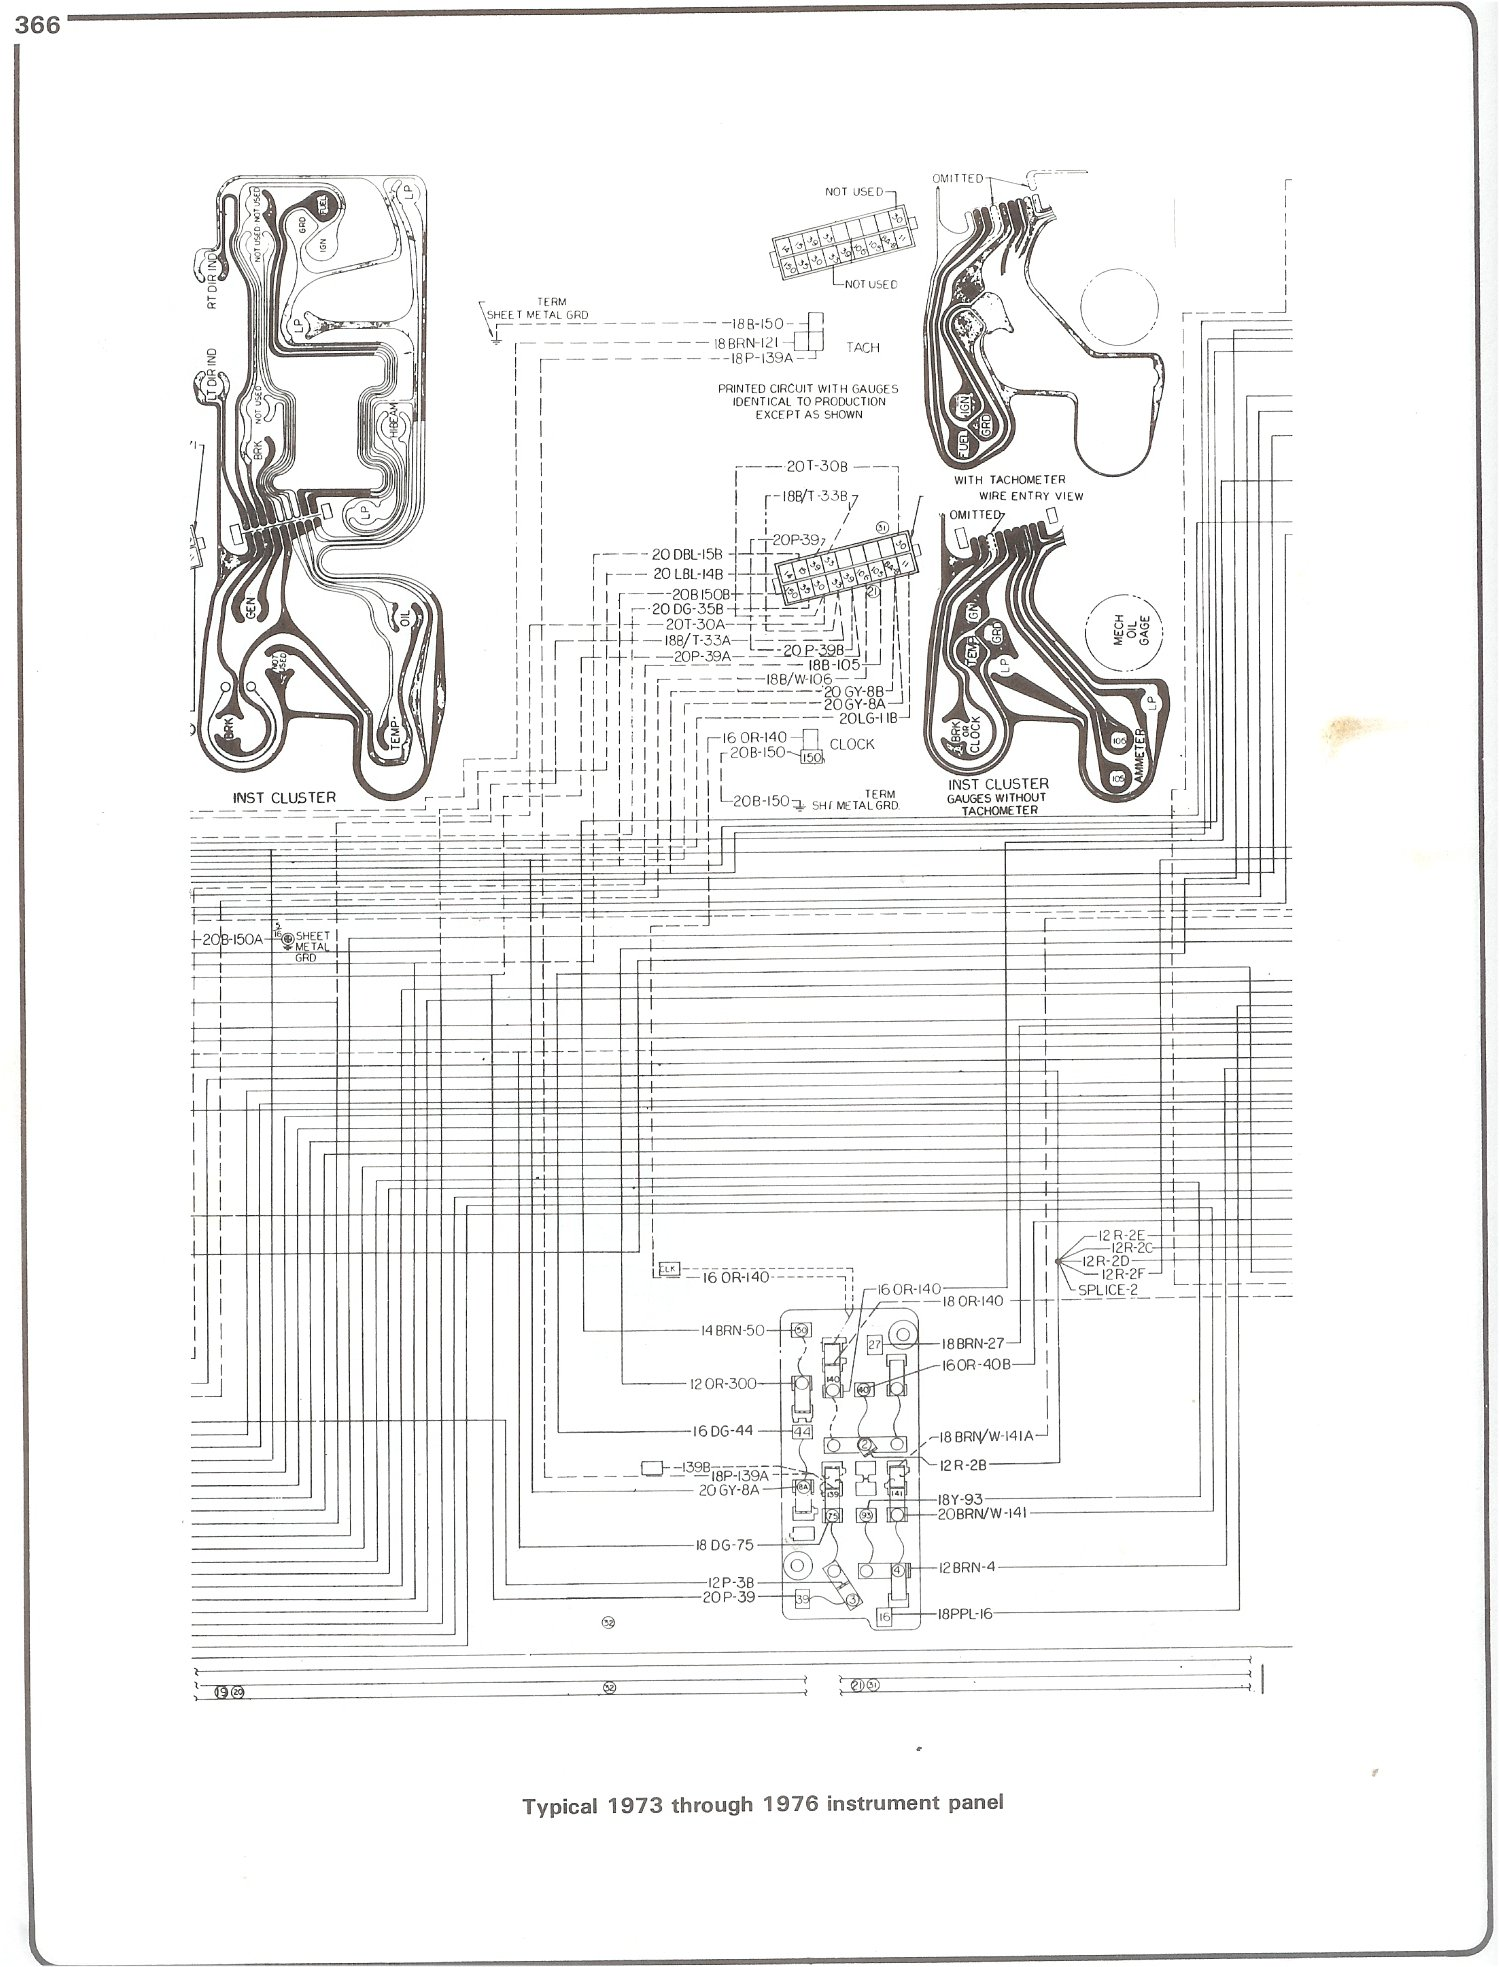 1973 chevy pickup wiring diagram technical diagrams